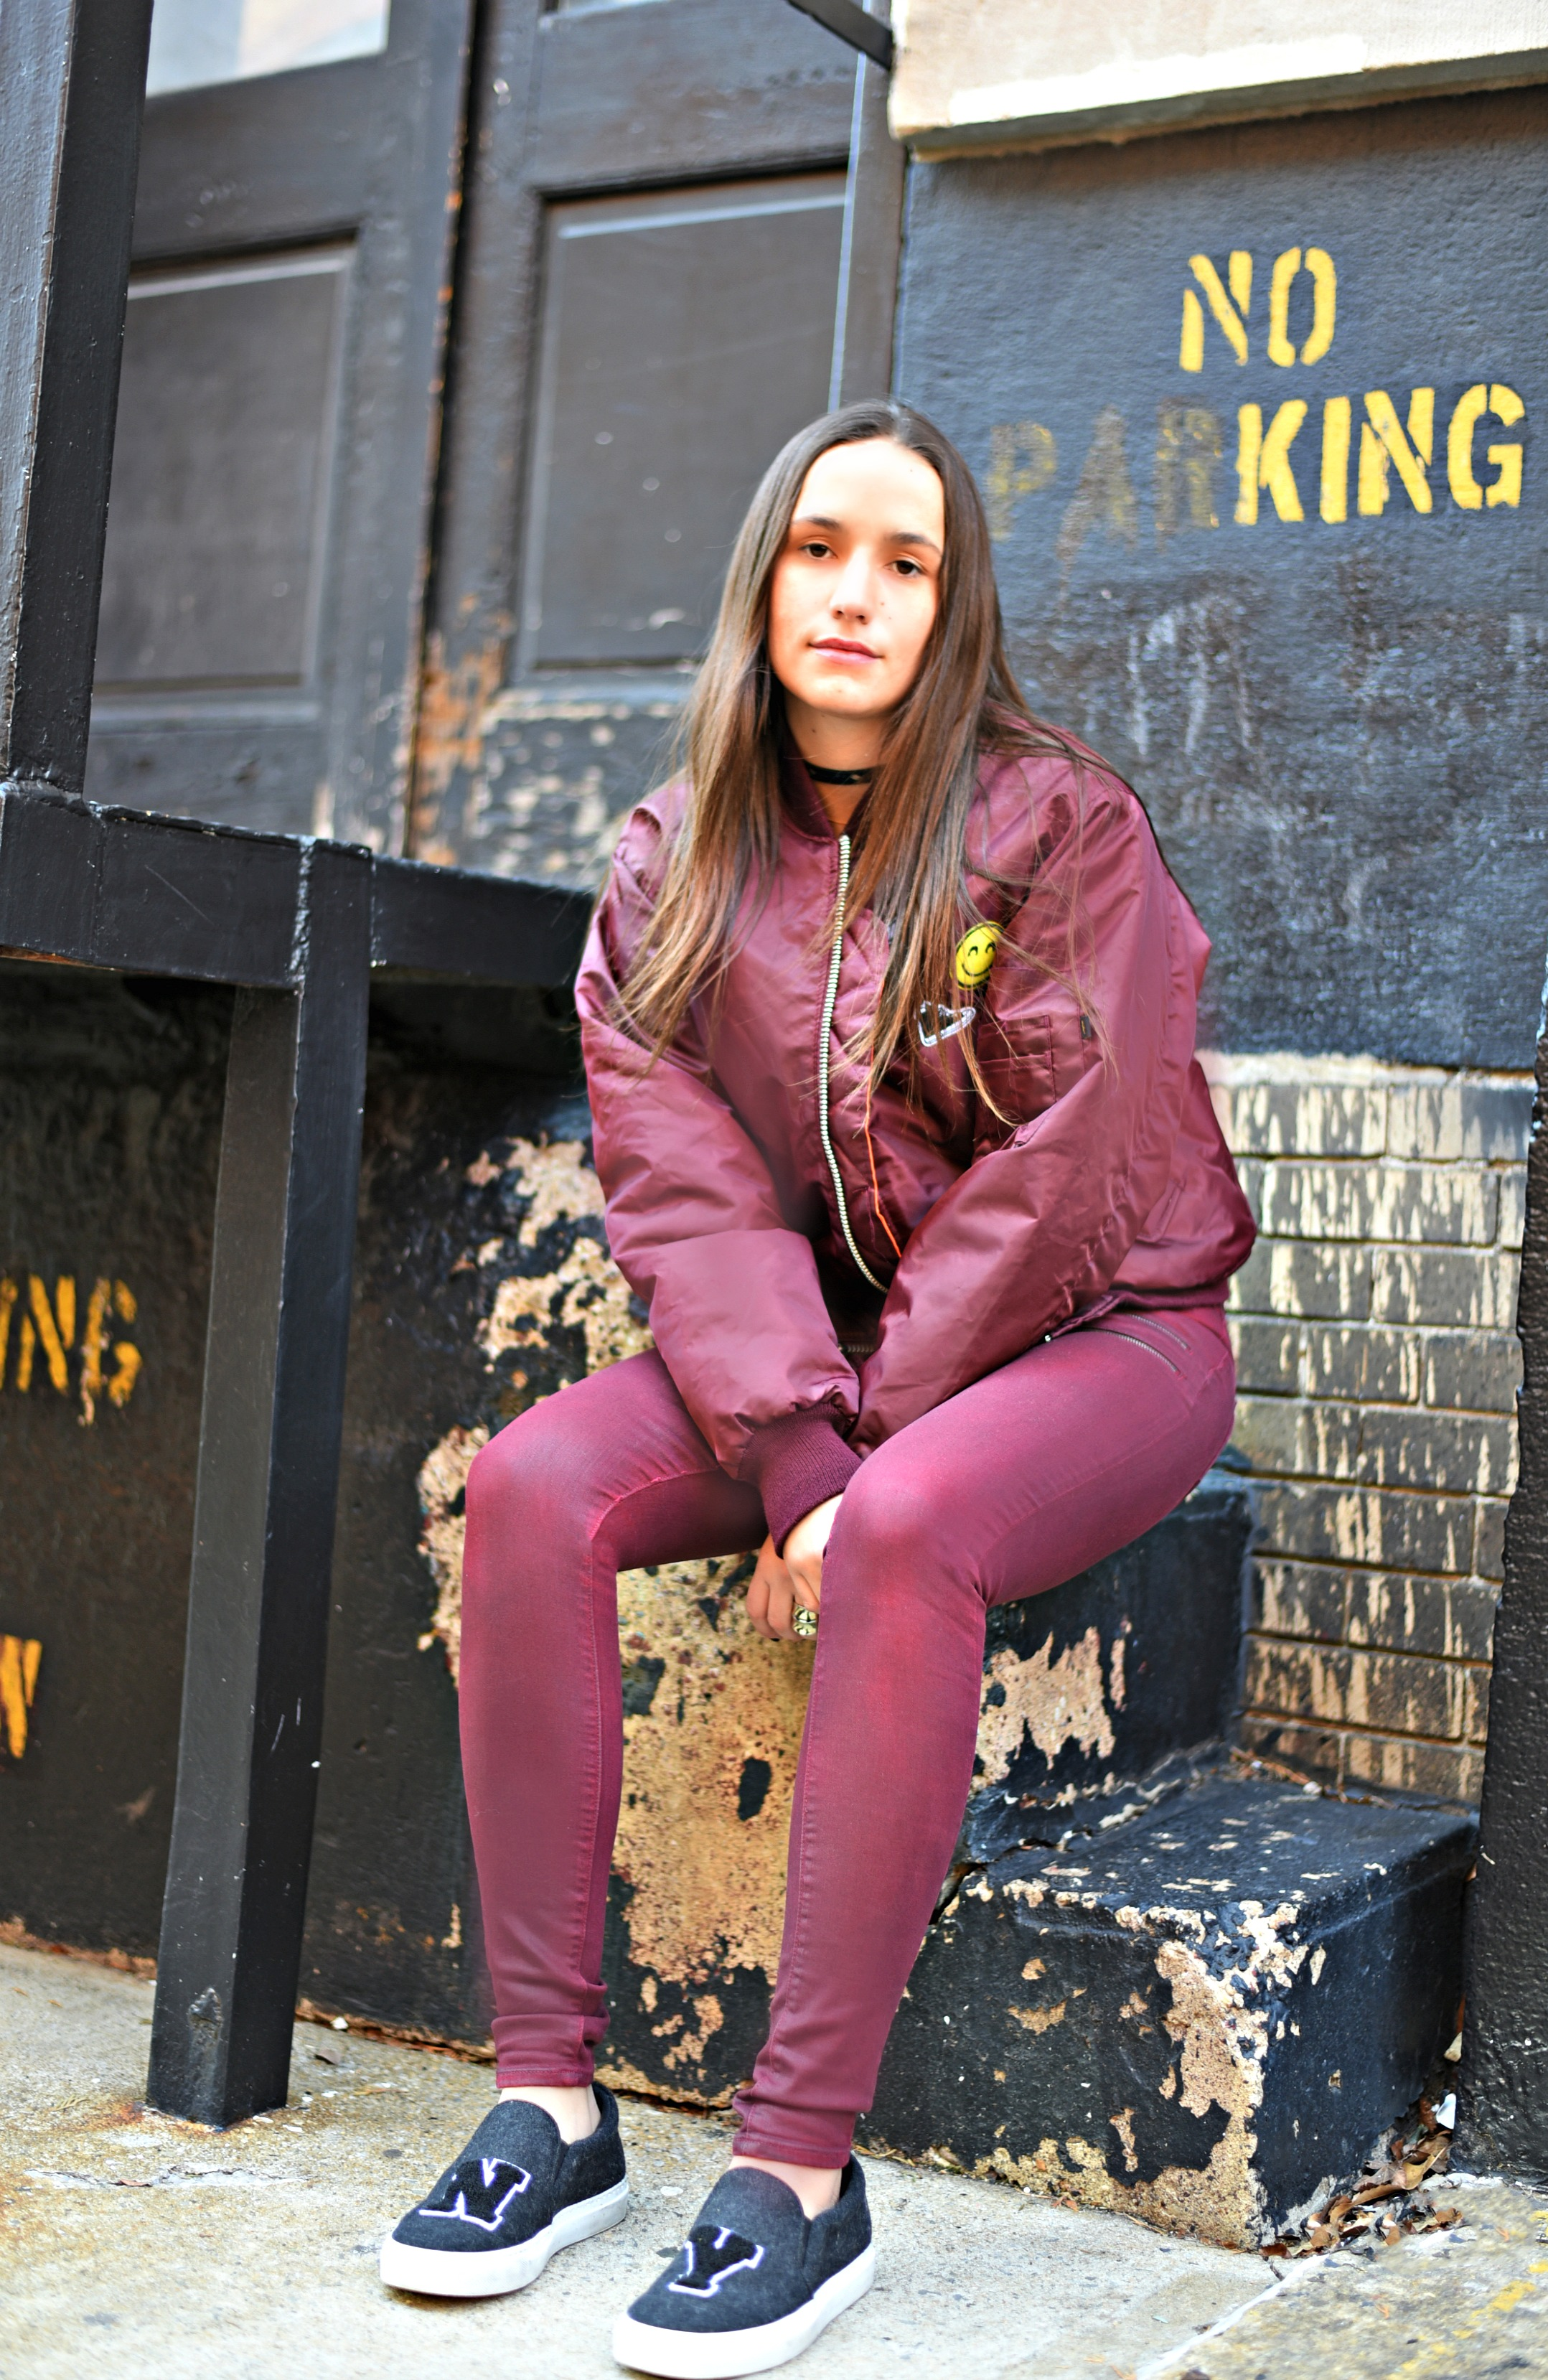 SOPHIE BICKLEY YIN 2MY YANG SISTER FASHION BLOGGERS NYC UNEMPLOYED DENIM PERSONALIZED BOMBER JACKET POST